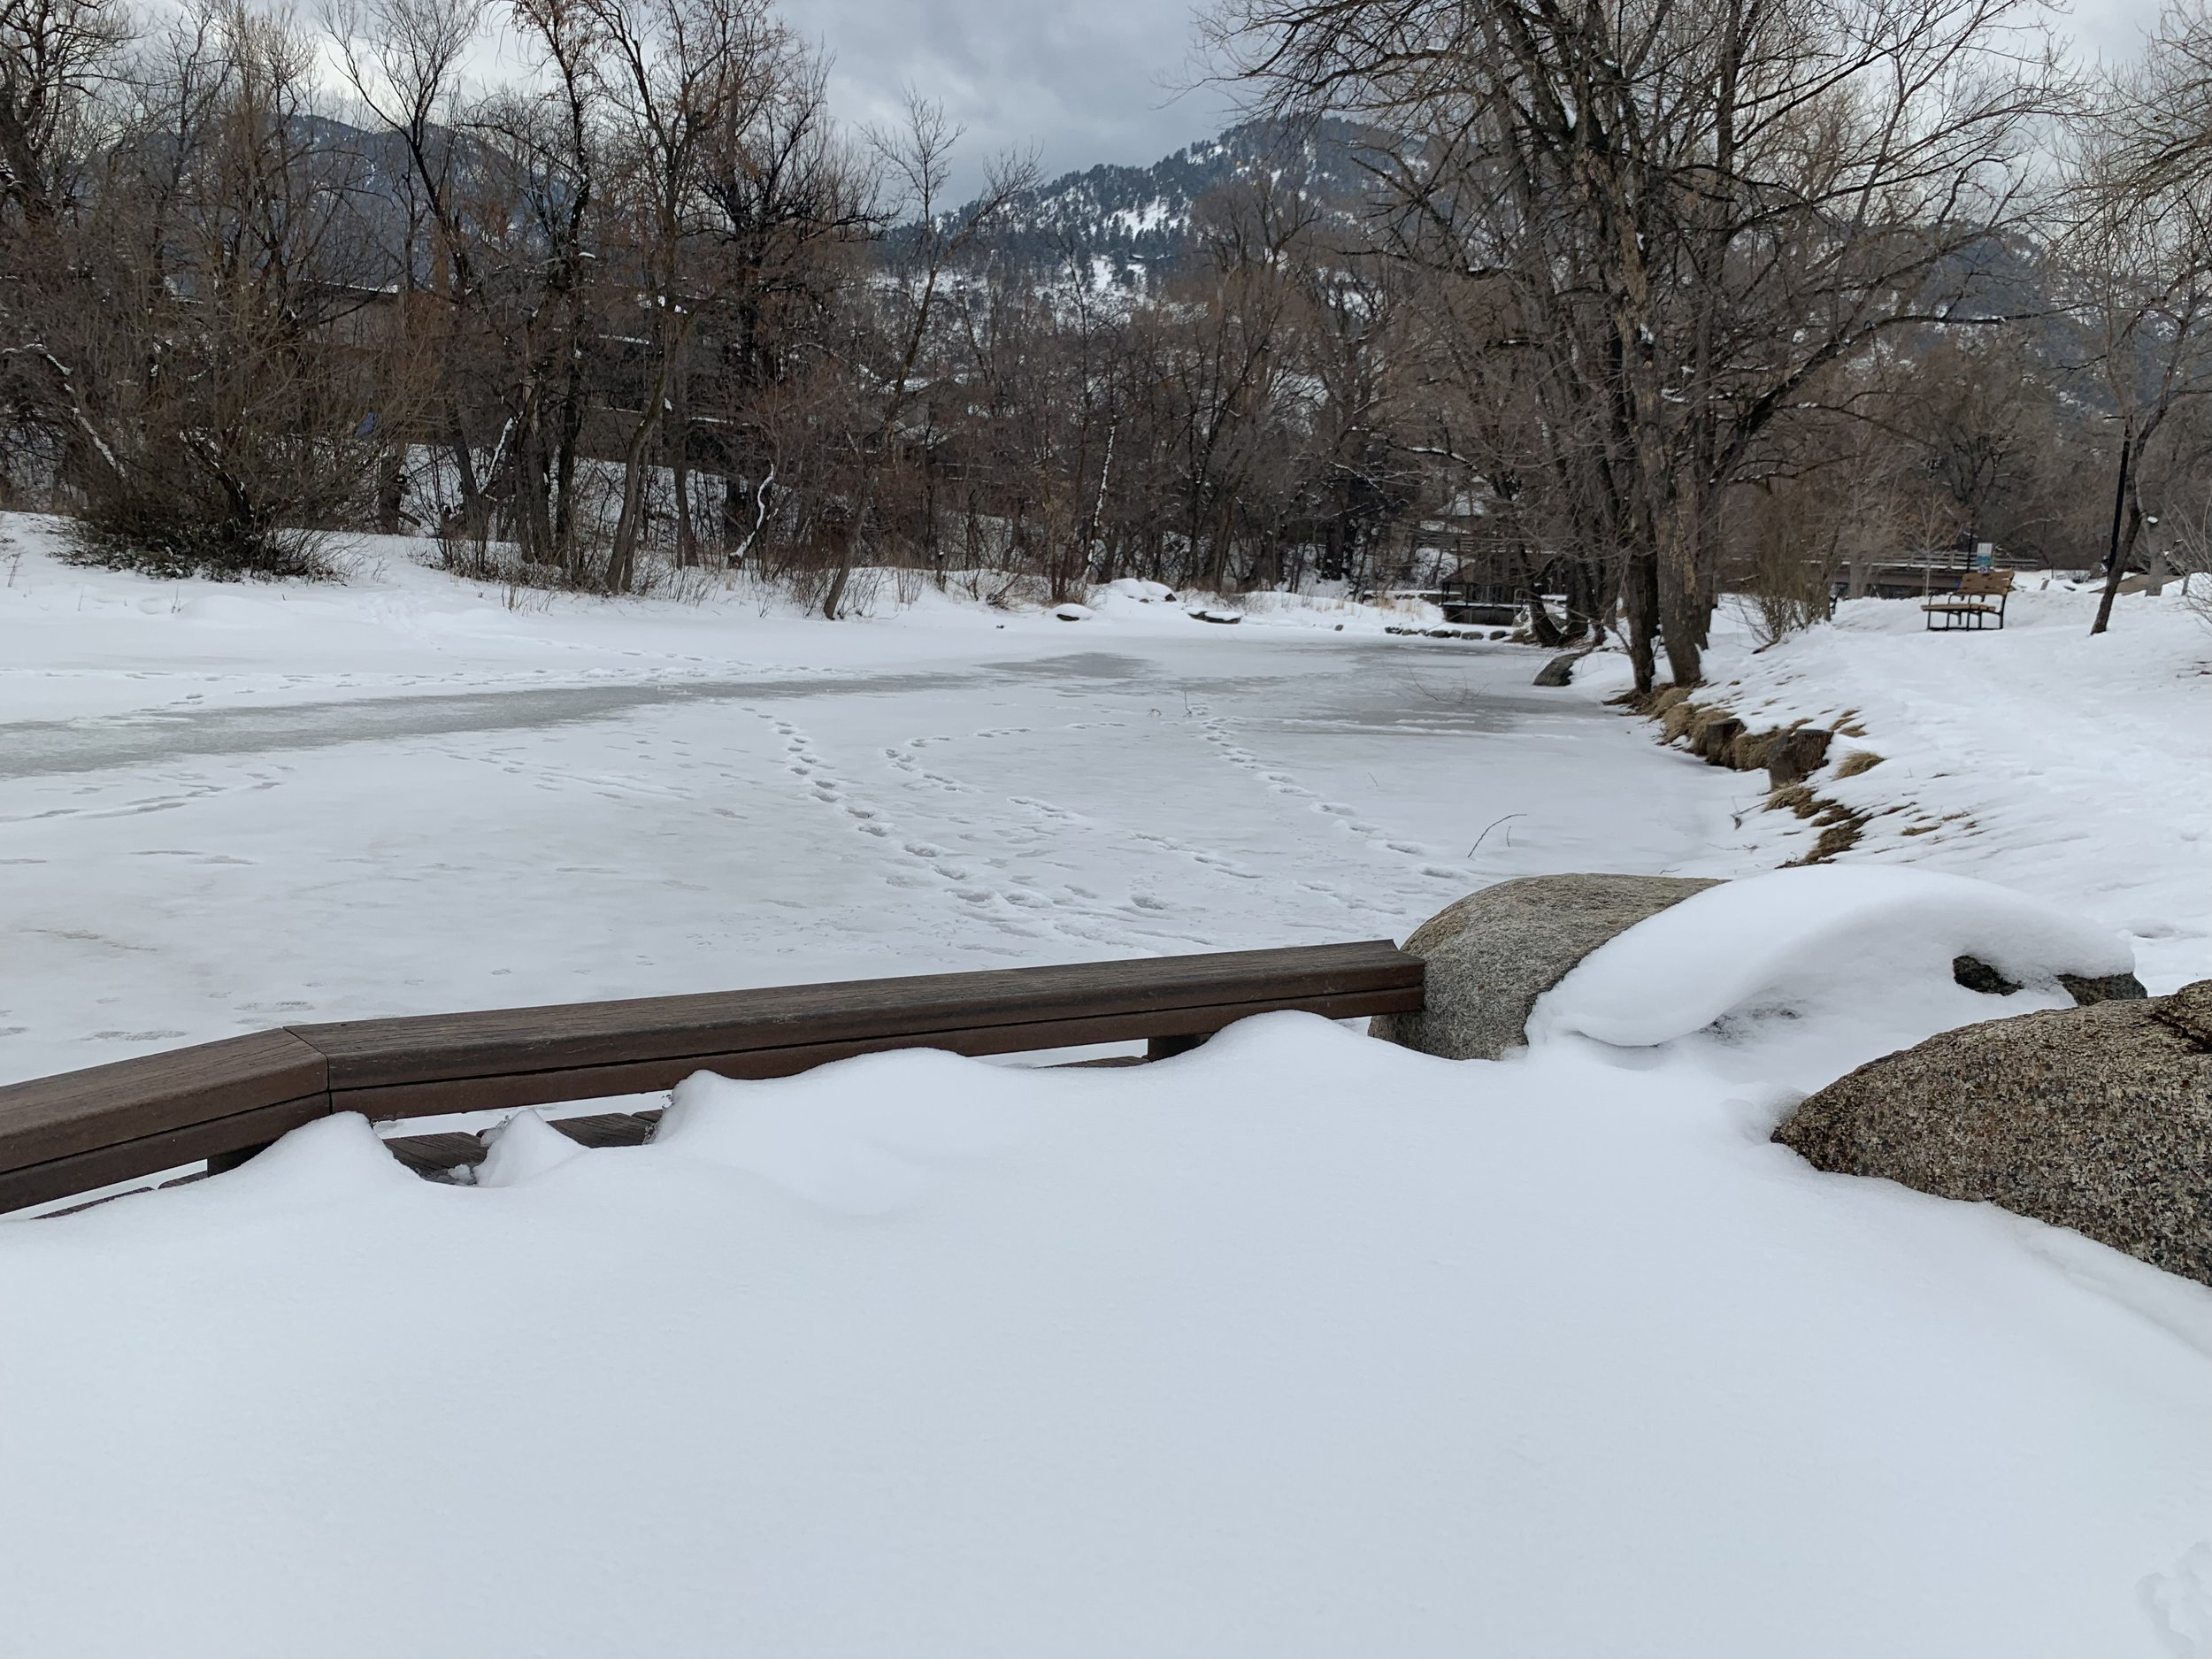 The kids' ponds fully frozen over (early March).